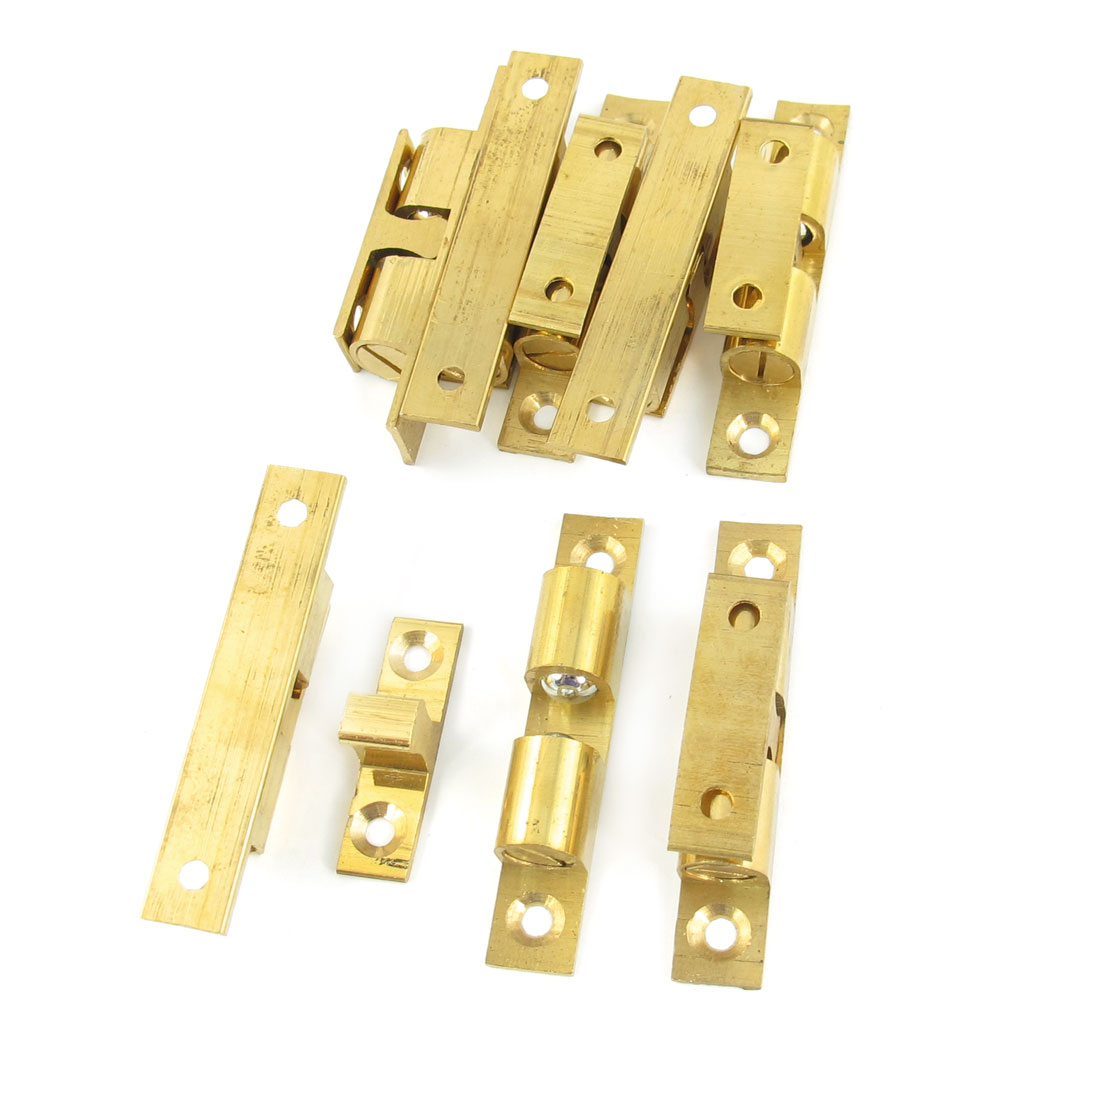 8 Pcs 60mm Long Brass Double Ball Catch Hardware Tool for Cabinet Doors